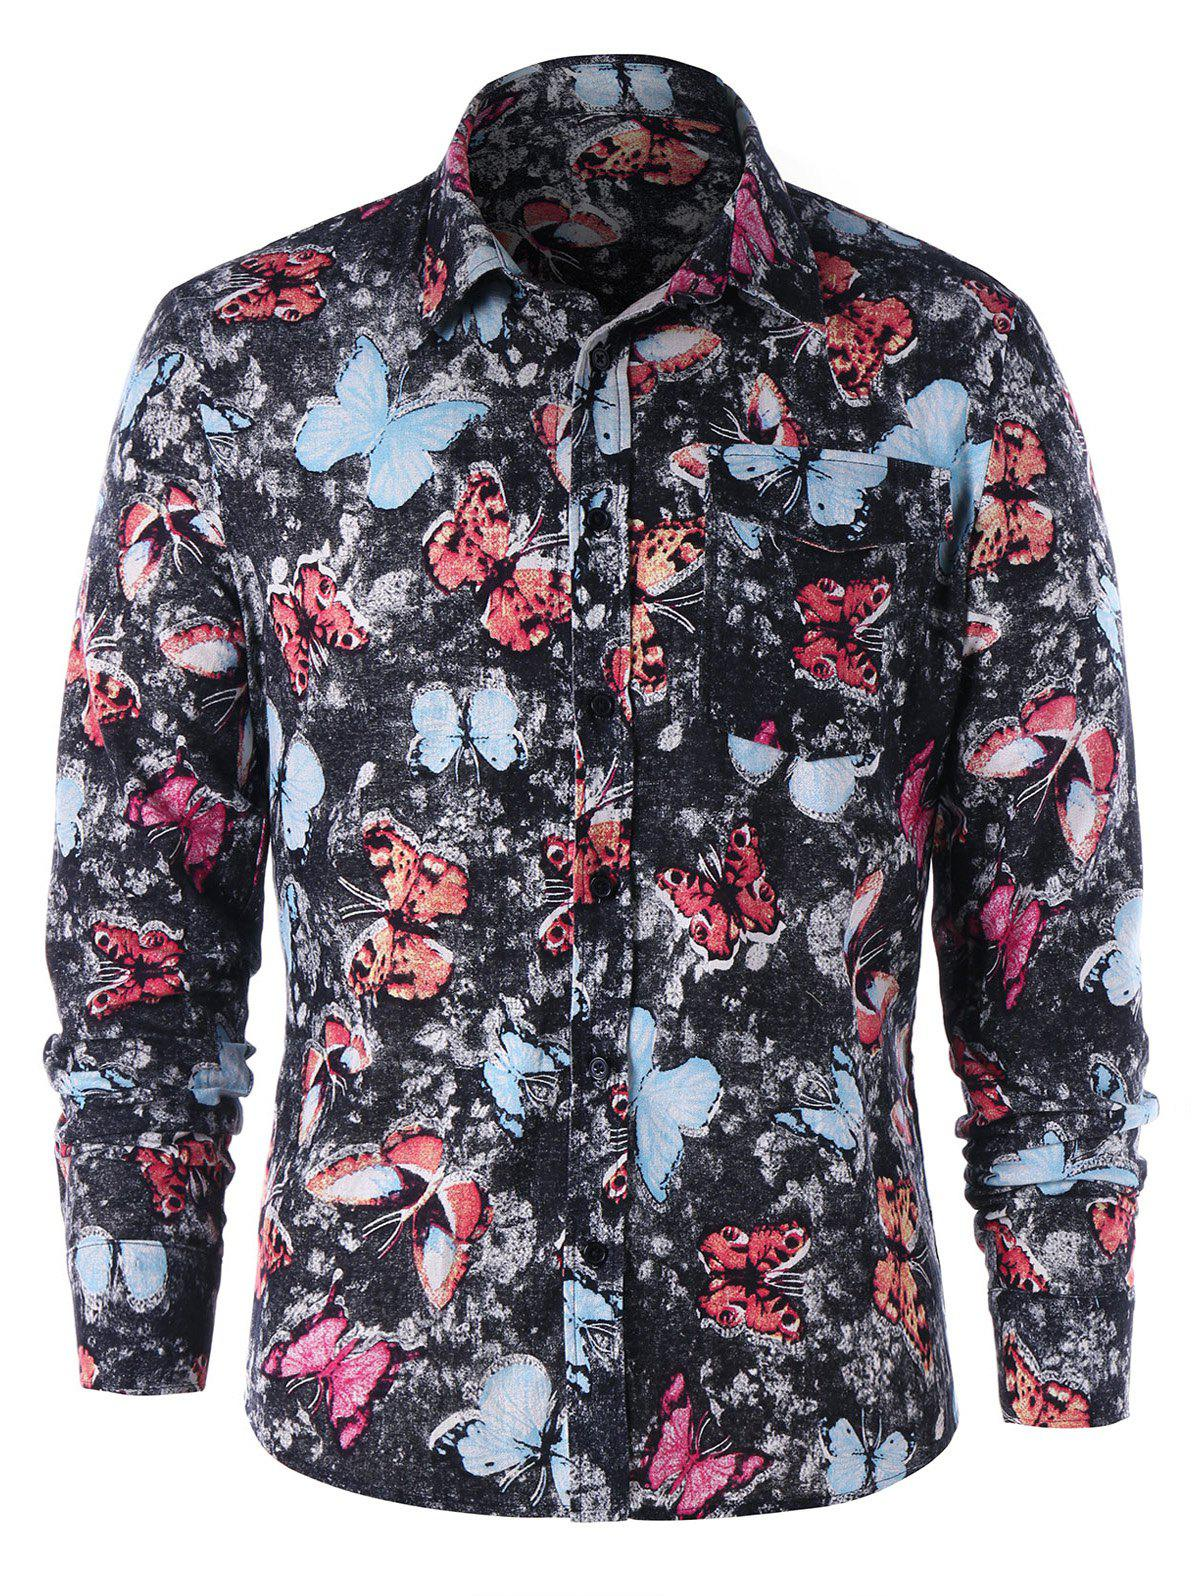 Latest Single Pocket Butterfly Print Shirt